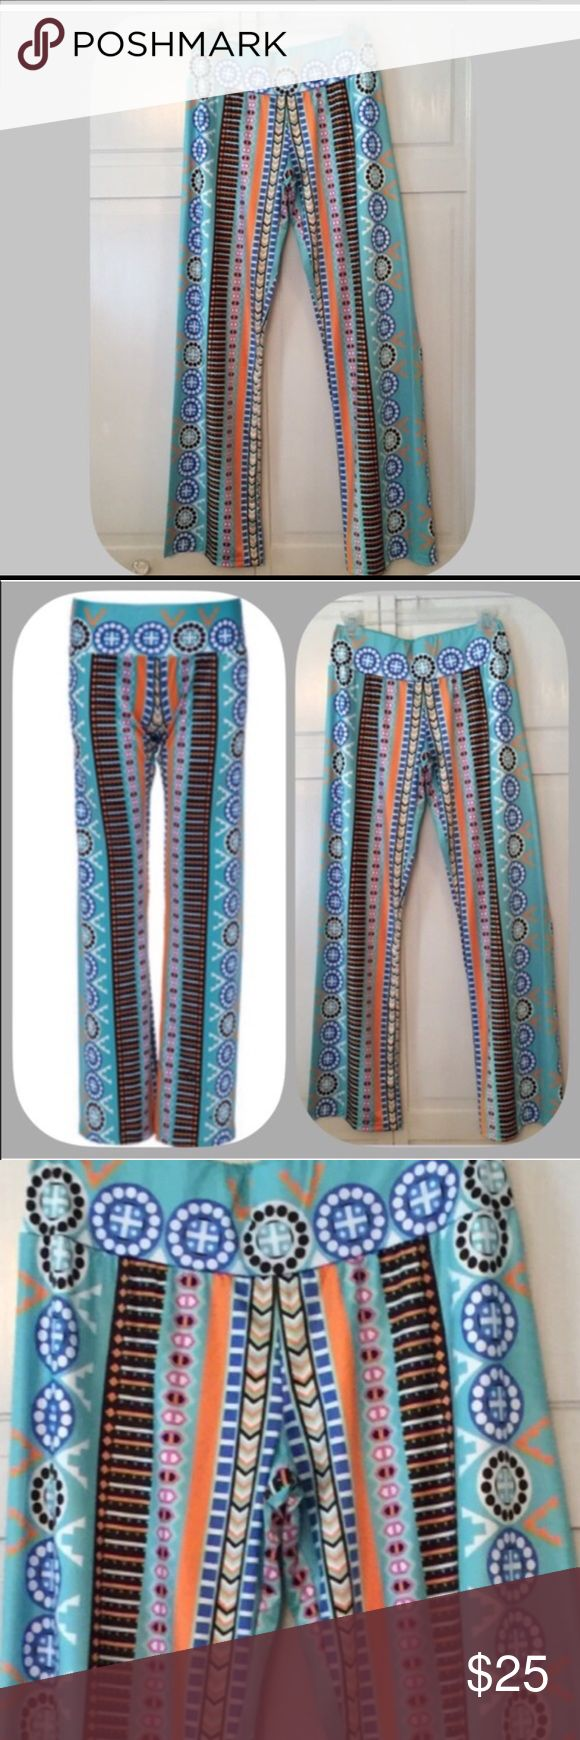 NWT Trendy Blue/Orange Comfy Bootcut Leggings I have these and they are definitely a favorite of mine! They are so soft and comfortable! Very versatile! I wear them out and hang out in them! Gorgeous colors too! Boutique Pants Leggings